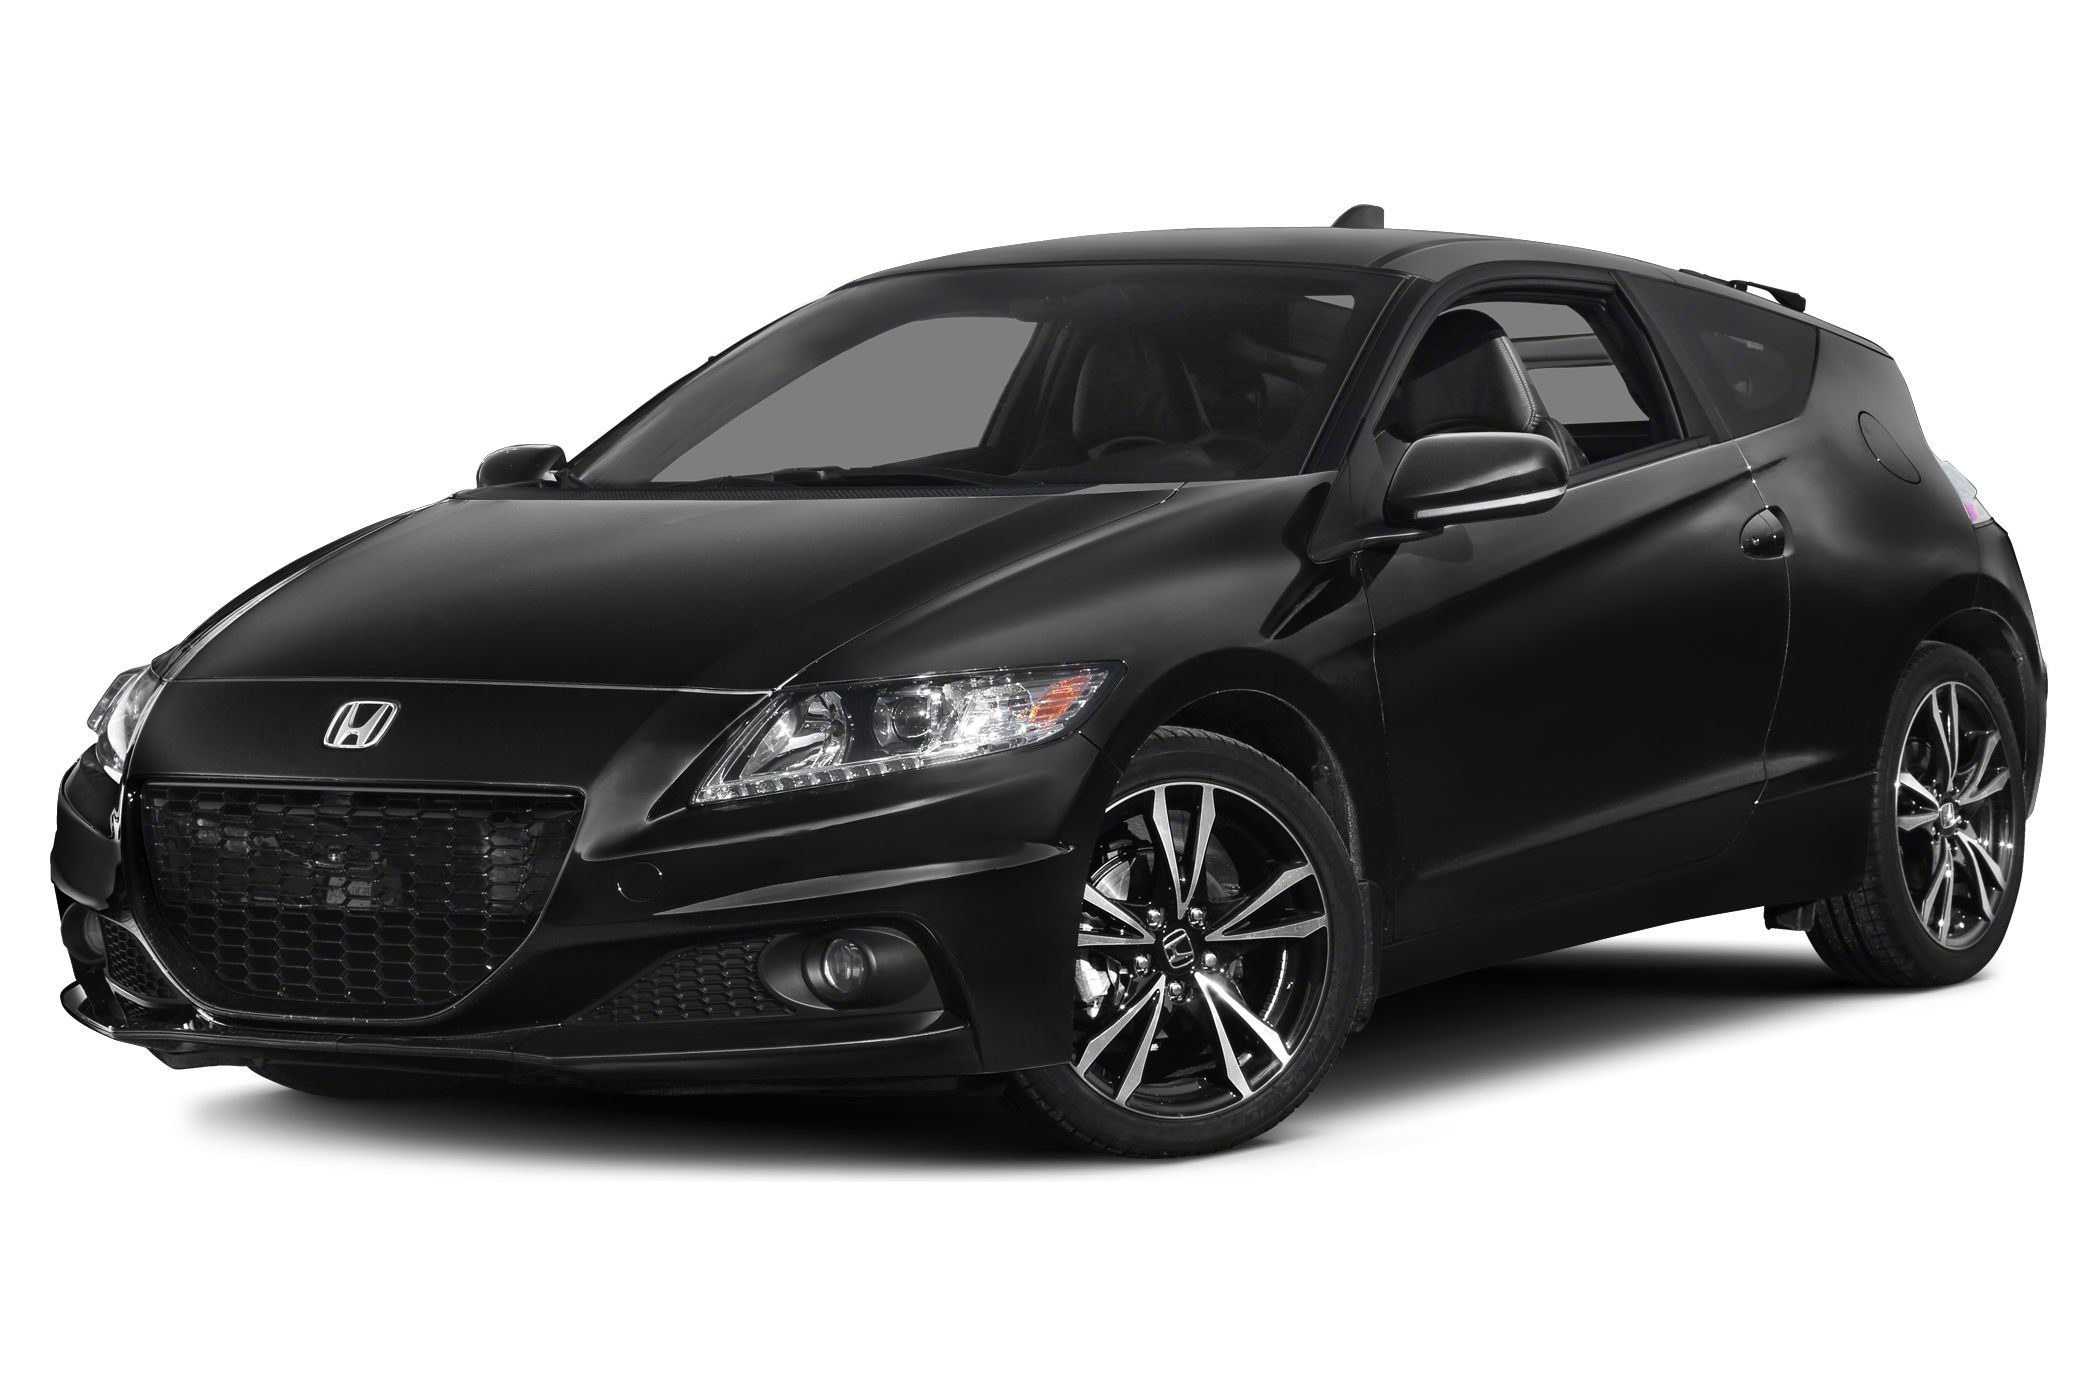 2015 Honda CR-Z EX Coupe for sale in Huntington for $23,460 with 0 miles.